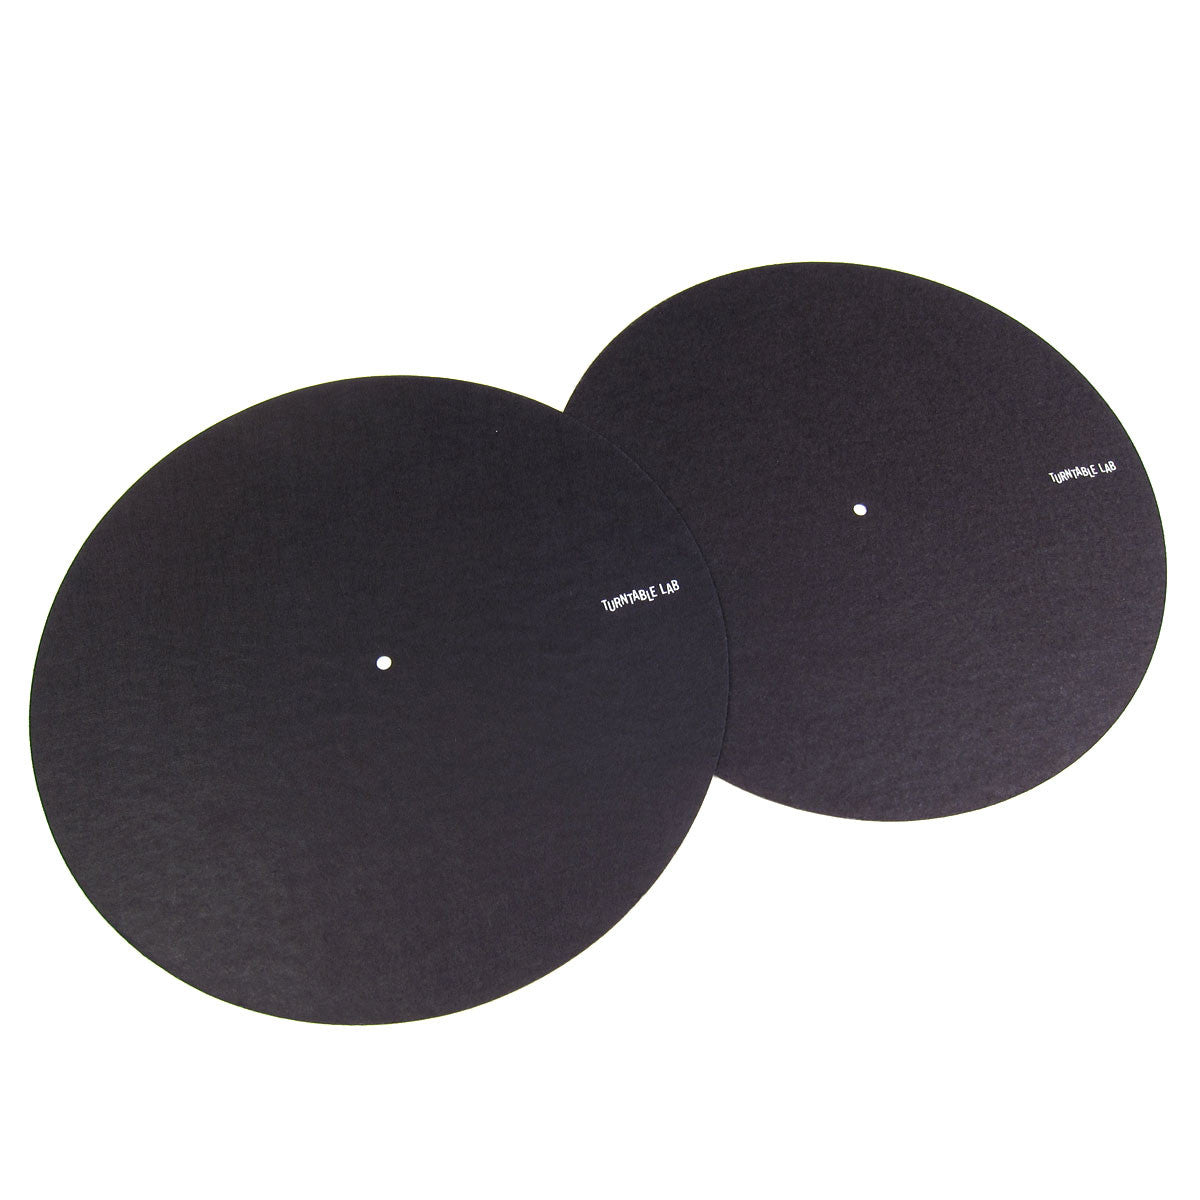 Turntable Lab: Audiosetup Slipmats Various black pair